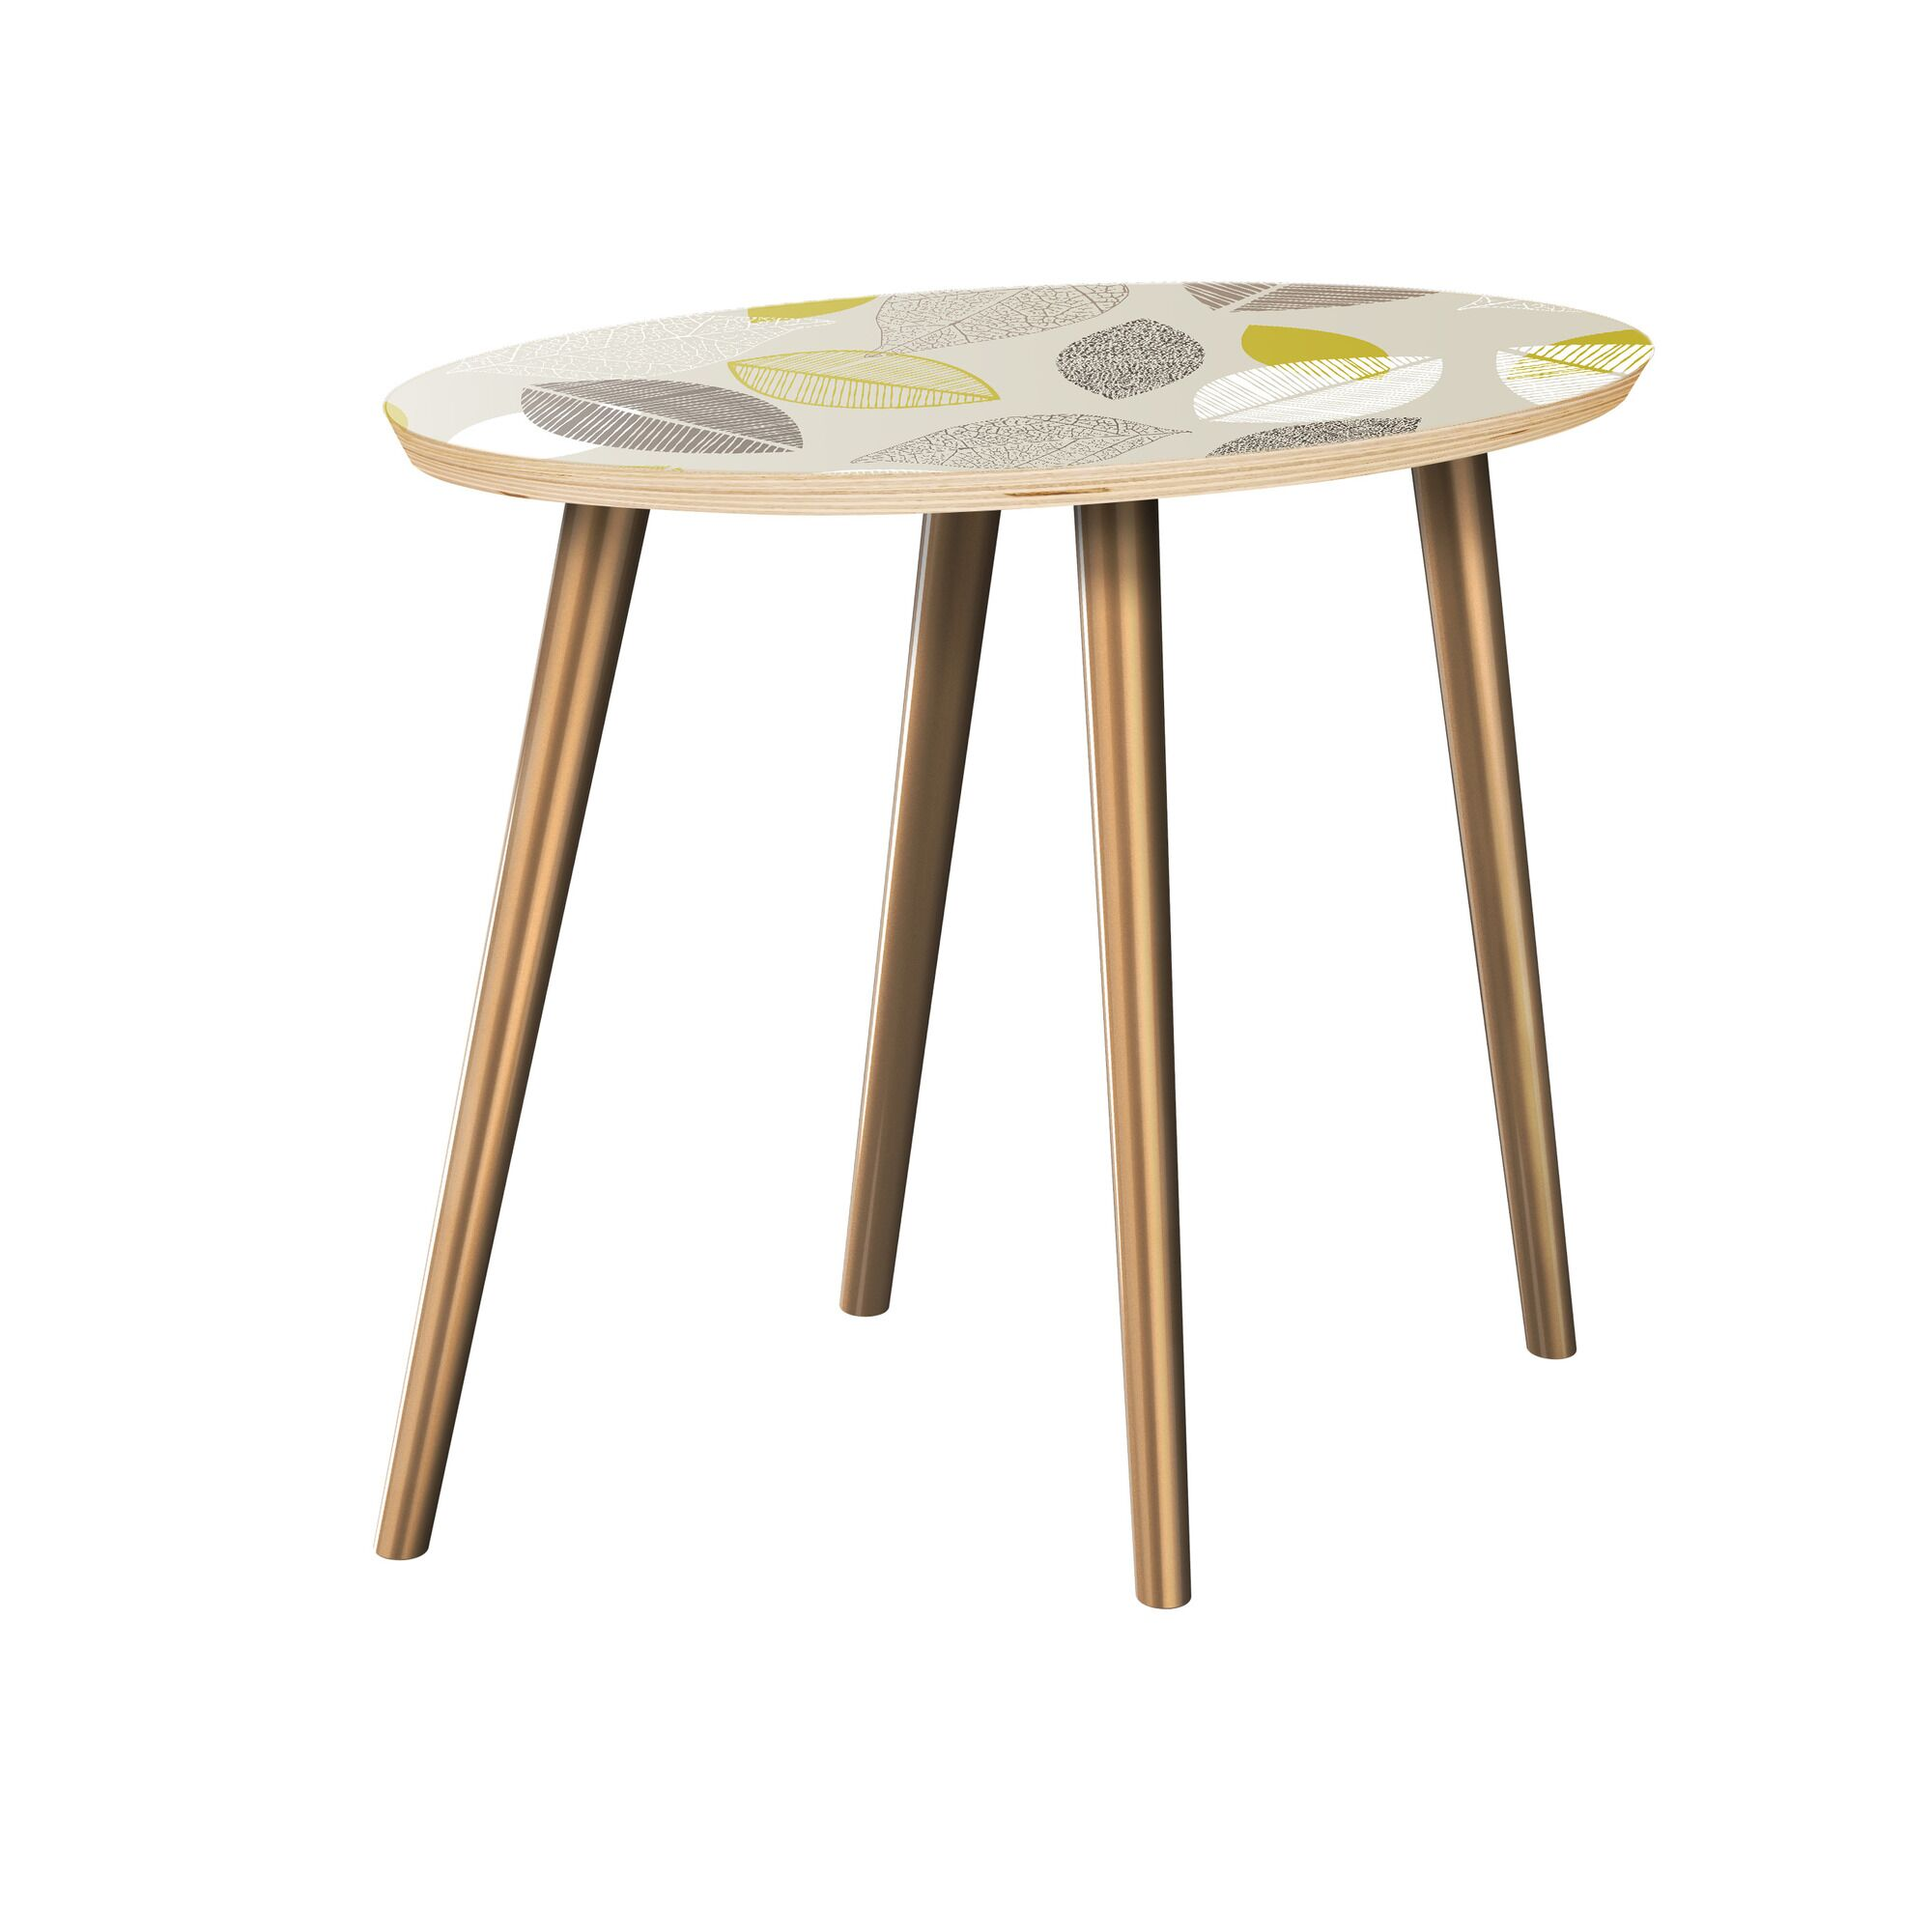 Krystin End Table Table Top Boarder Color: Natural, Table Base Color: Brass, Table Top Color: Green/Brown